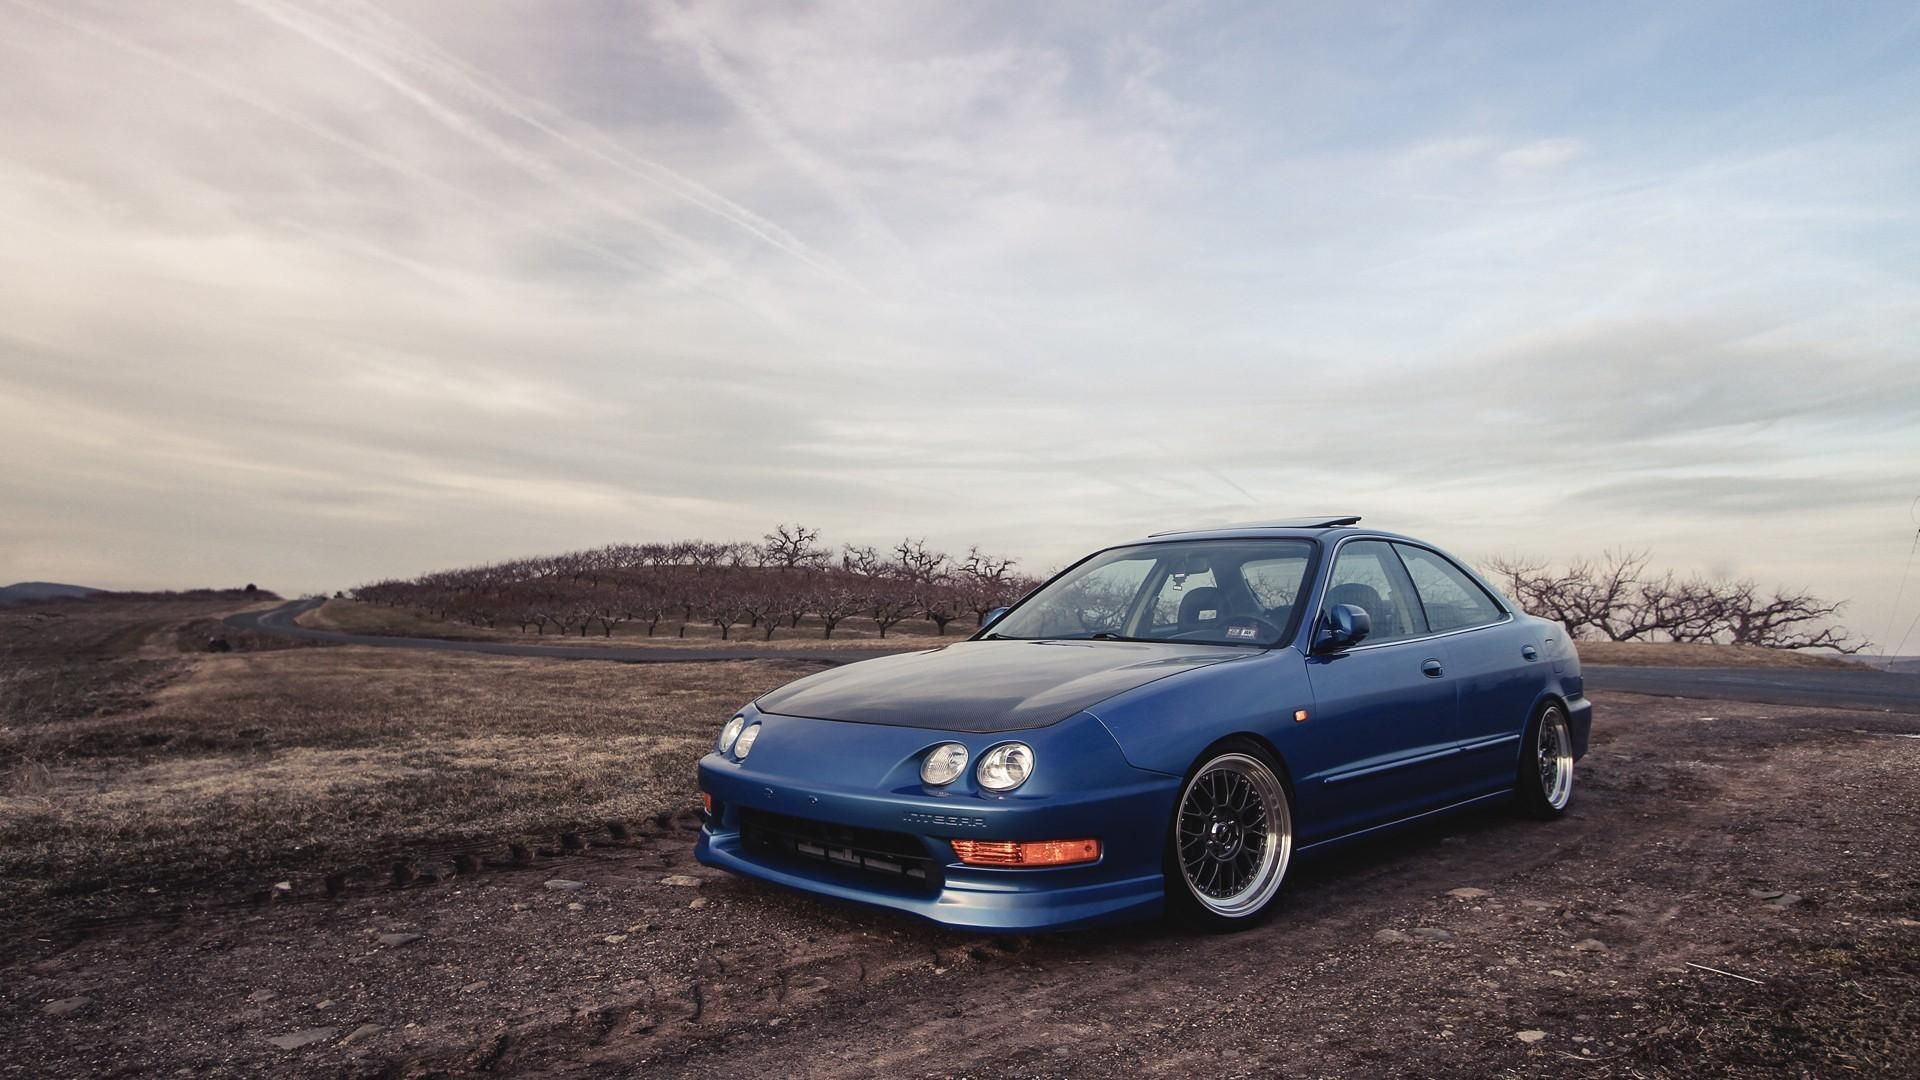 Acura Integra Wallpaper Iphone image 18 acura models Pinterest